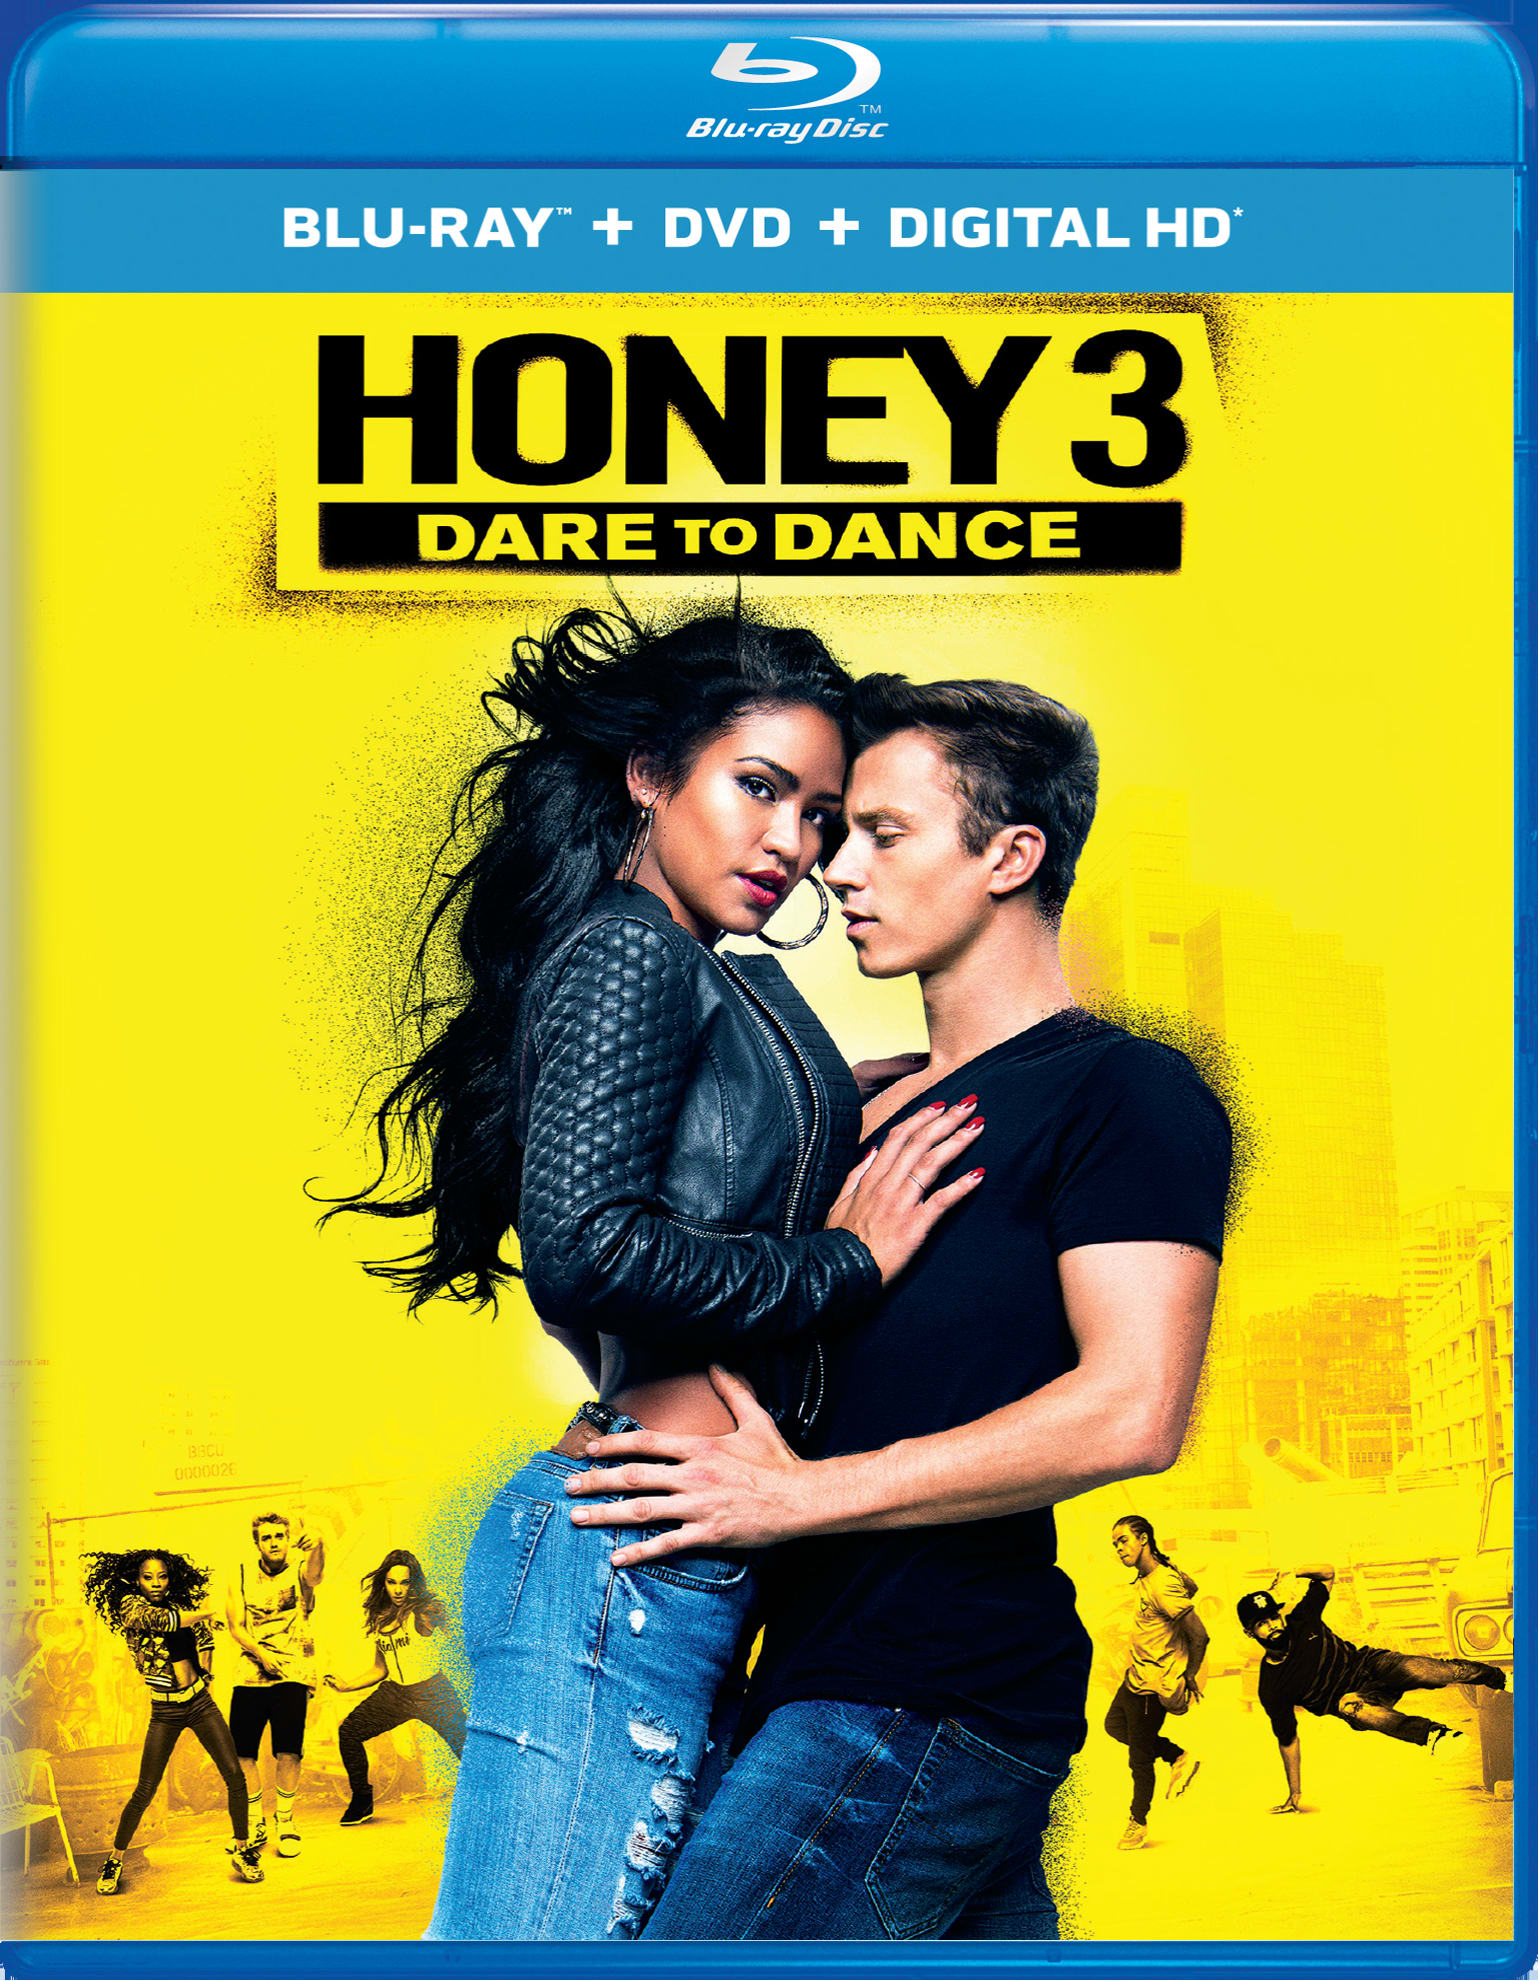 Honey 3: Dare to Dance (DVD + Digital) [Blu-ray]